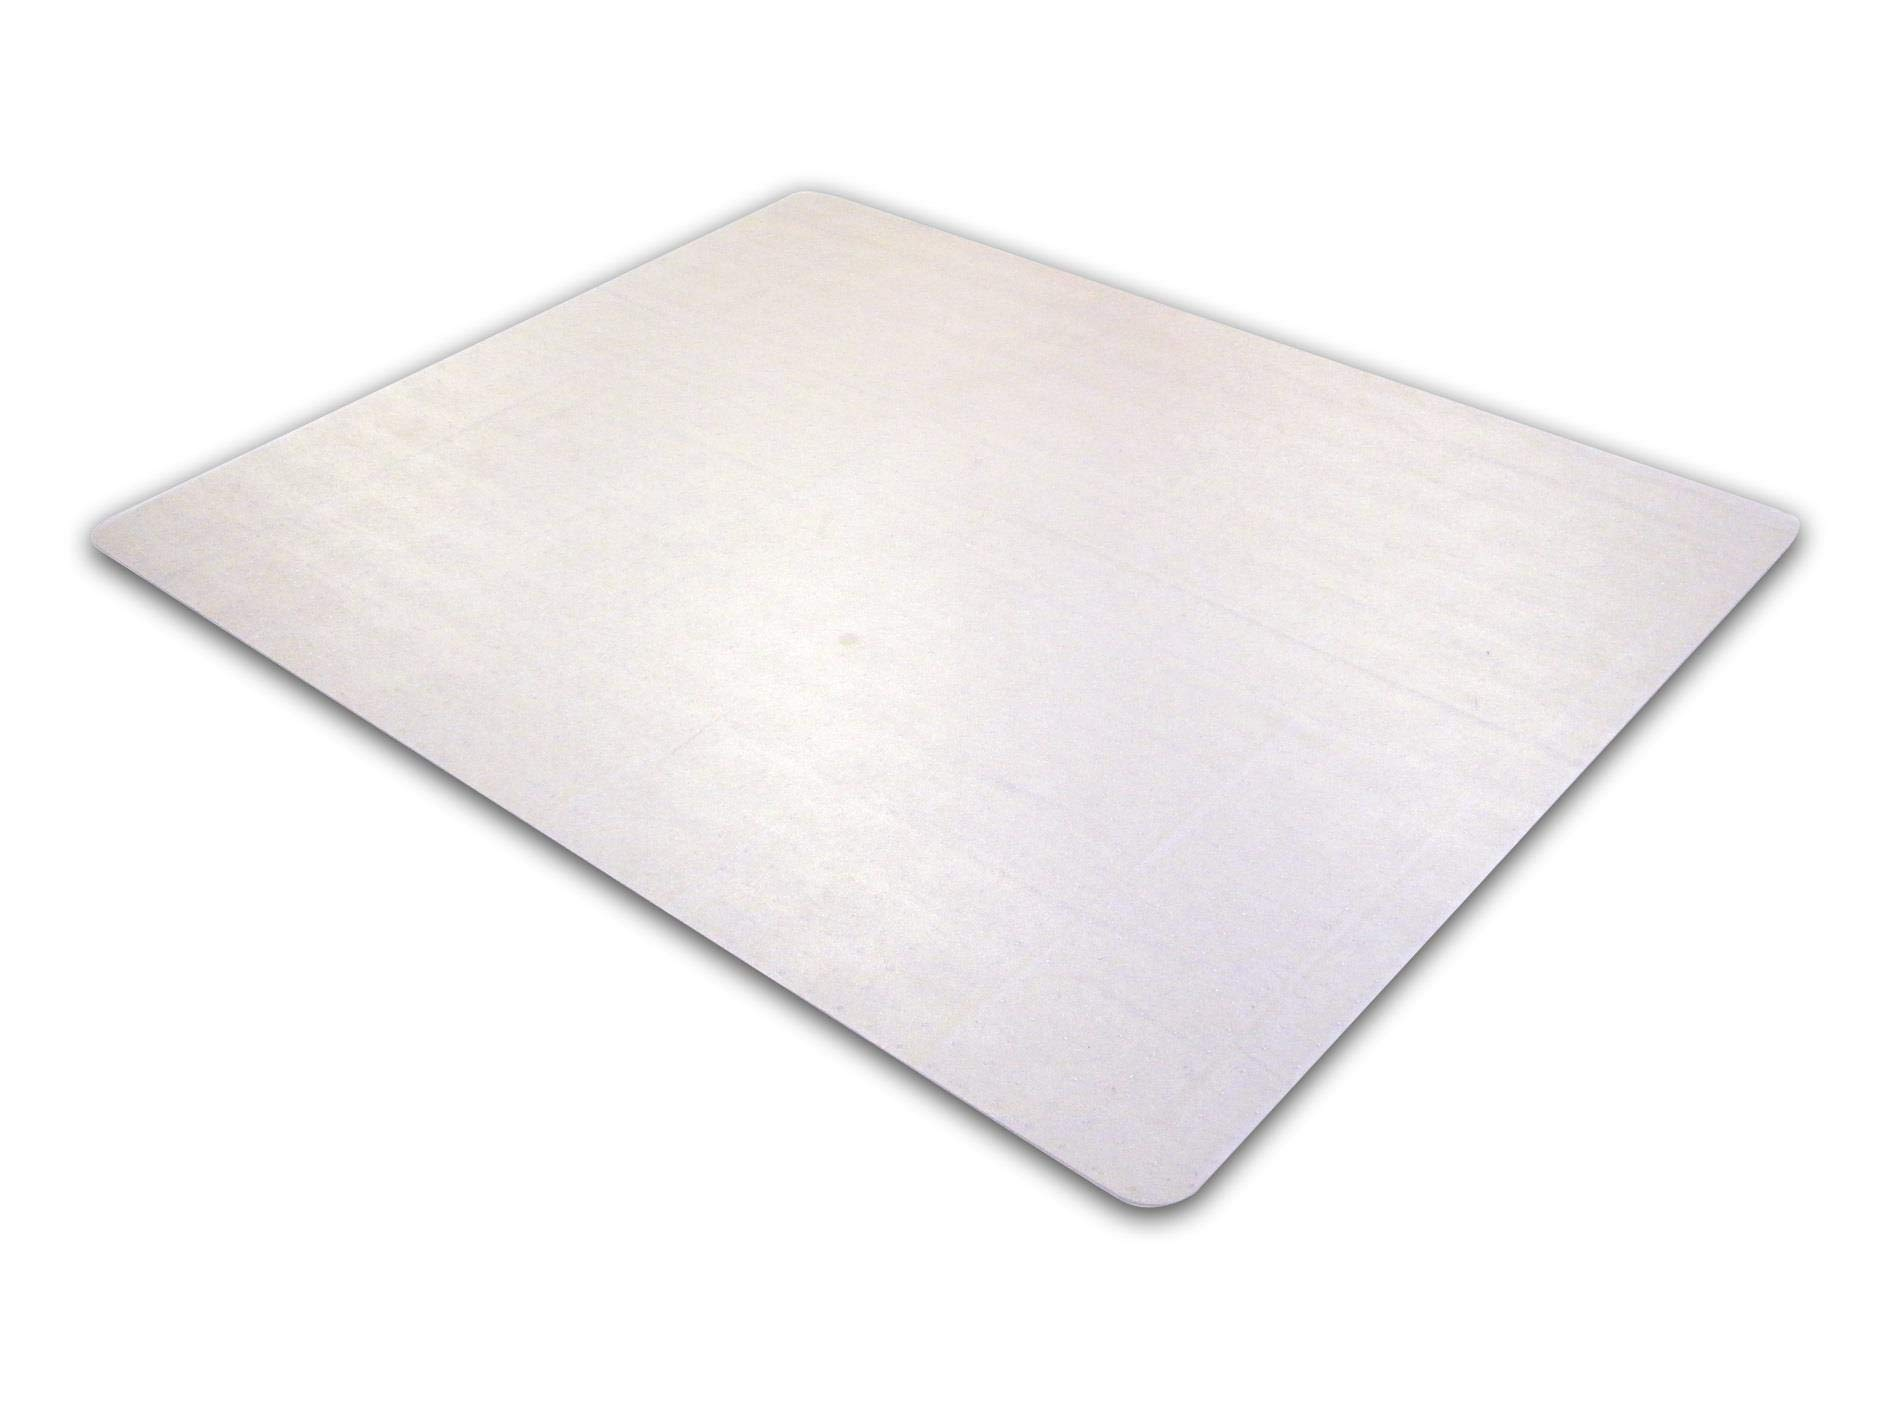 Ecotex Recycled Chair Mat to Protect Carpets up to 3/8'' 48'' x 60'' by Floortex